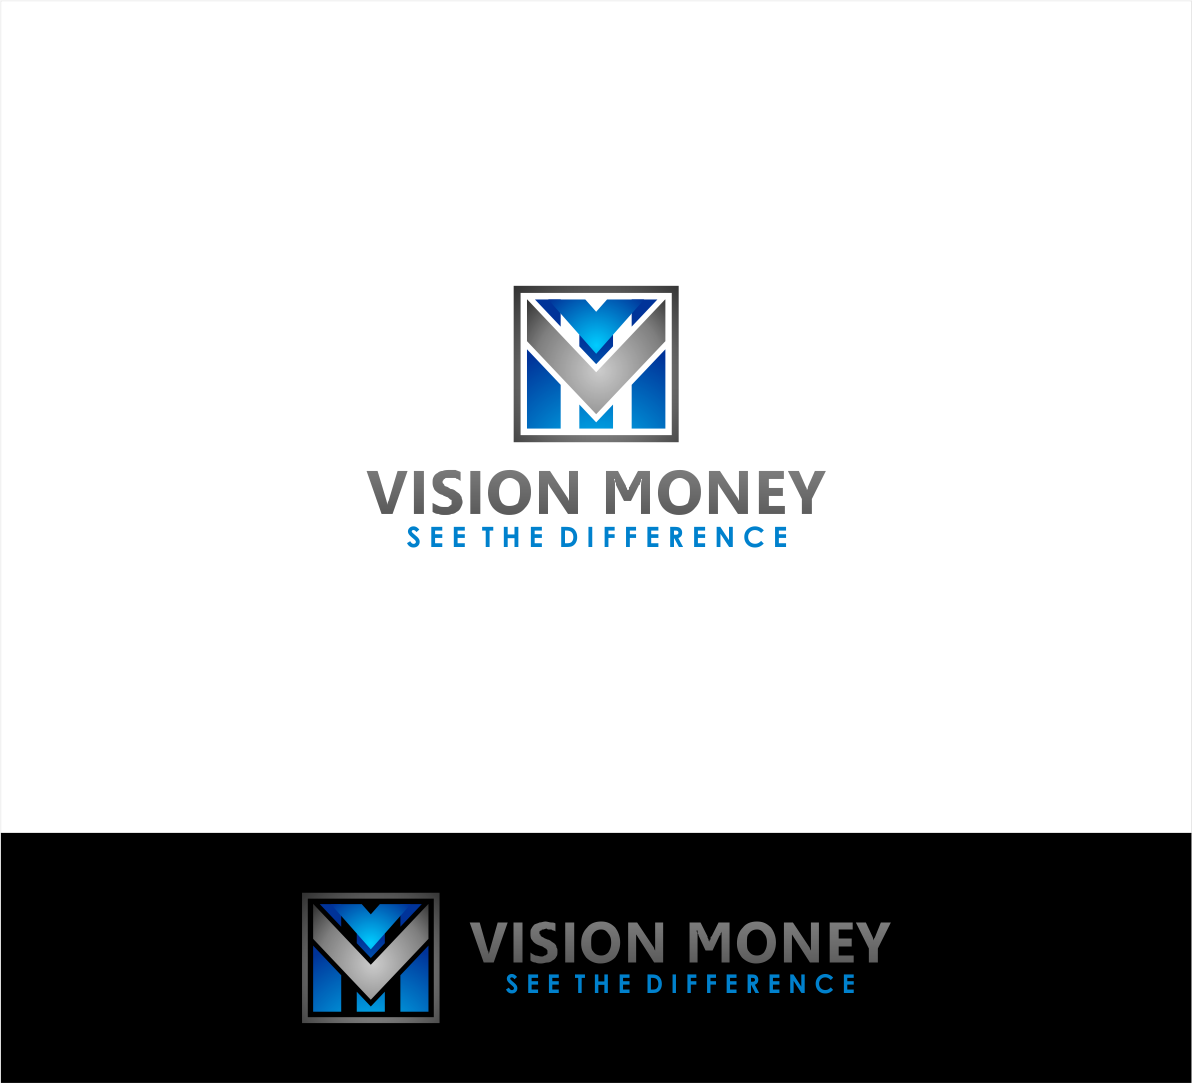 Logo Design by haidu - Entry No. 61 in the Logo Design Contest Captivating Logo Design for VISION MONEY.